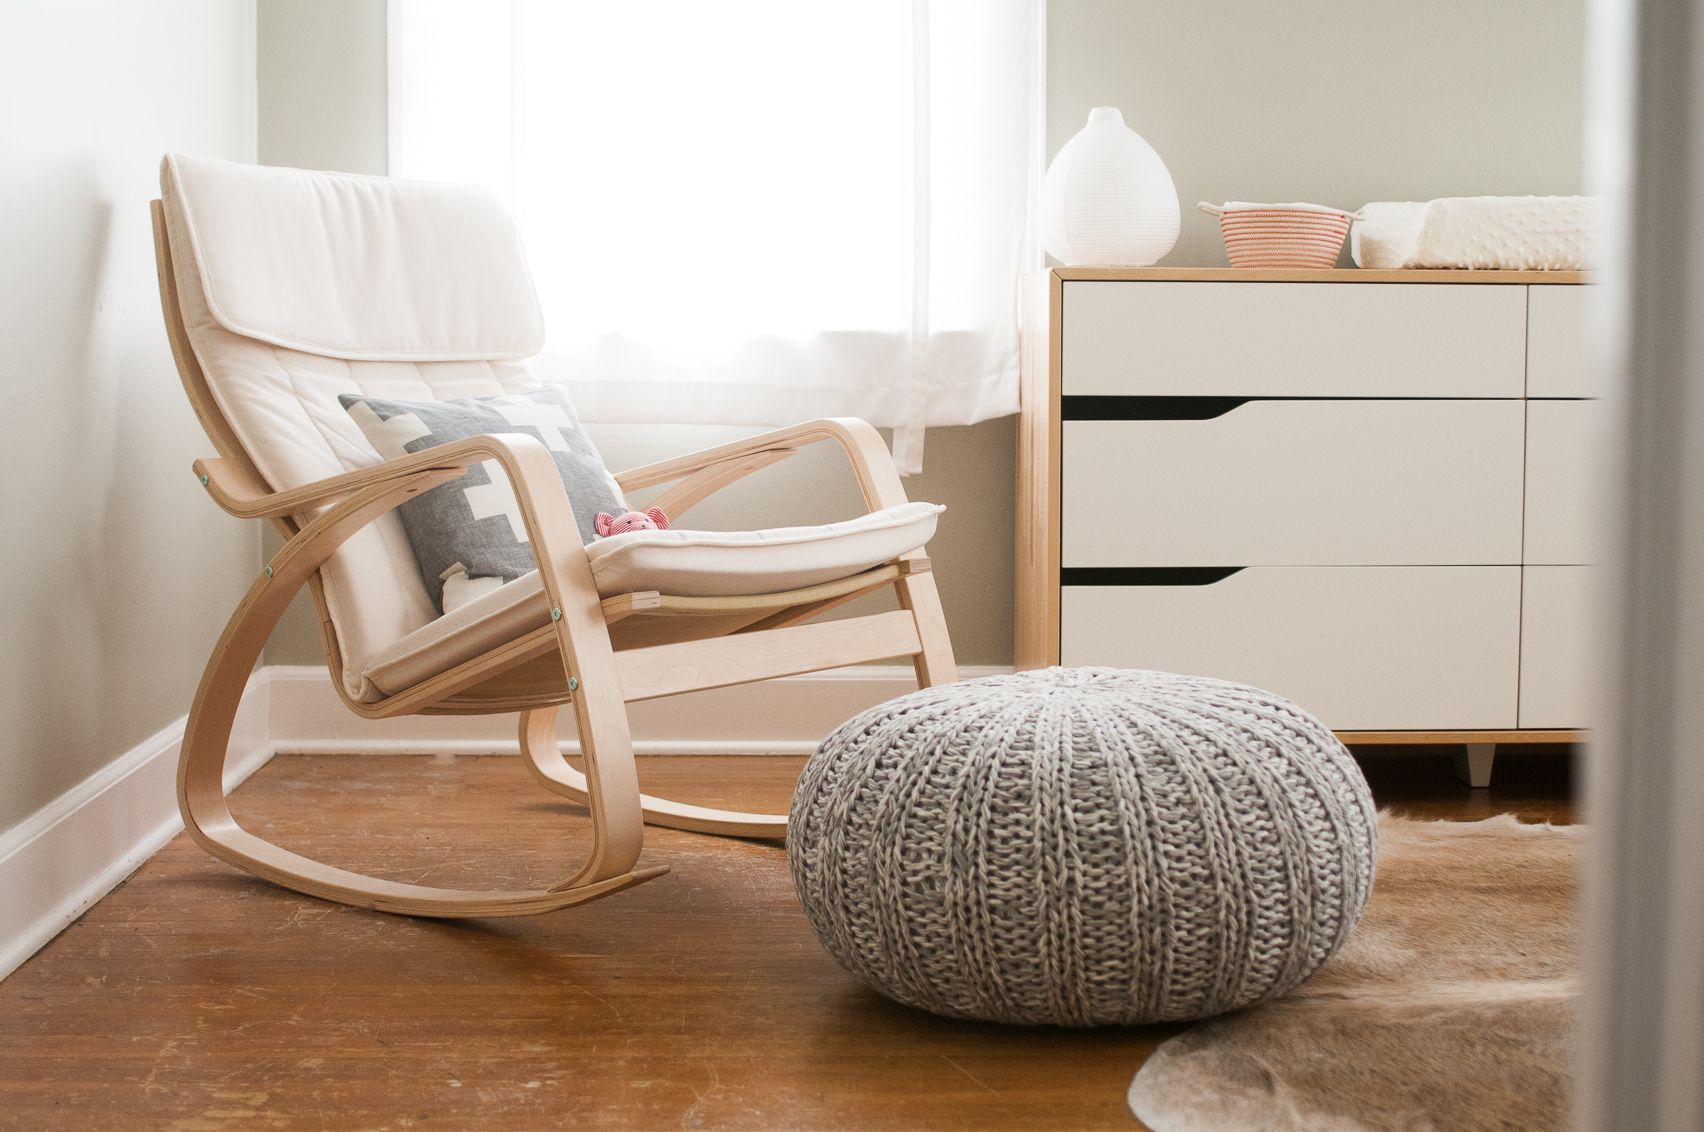 Ikea Poang Rocking Chair For Gray And White Nursery For Wooden Baby Nursery Rocking Chairs (#9 of 20)